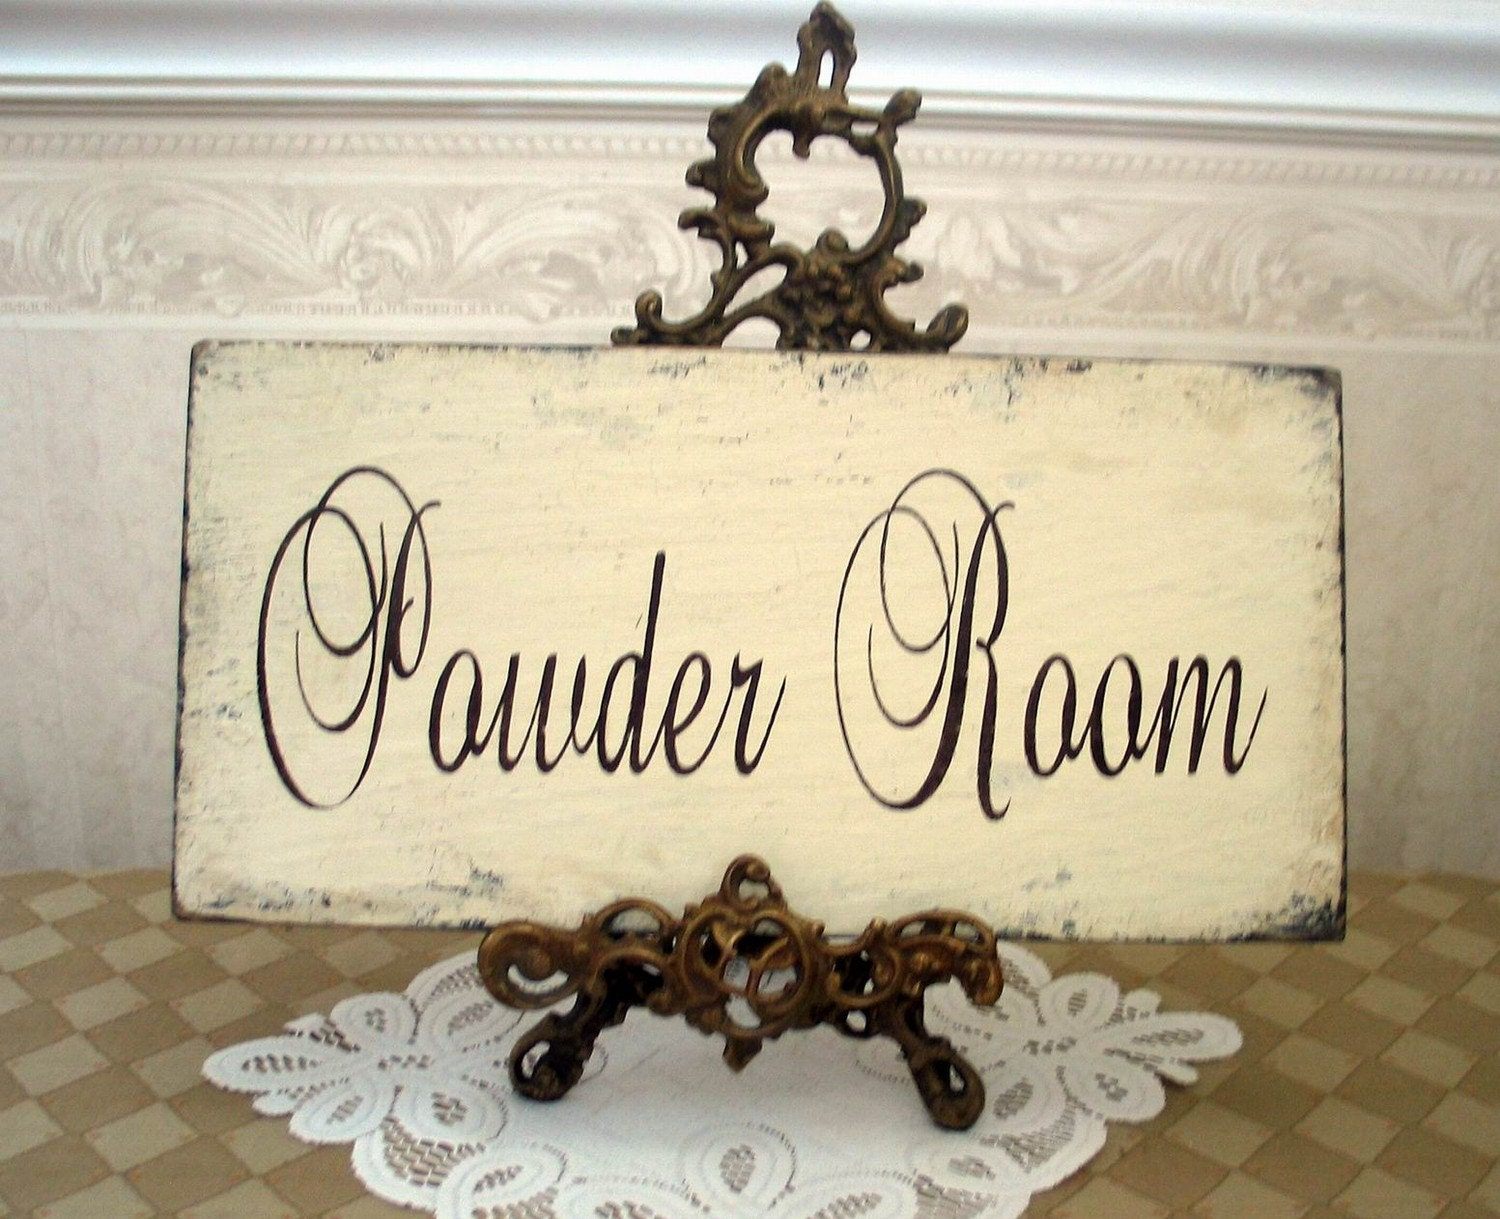 Powder Room Bath Shabby Cottage Vintage Style Sign